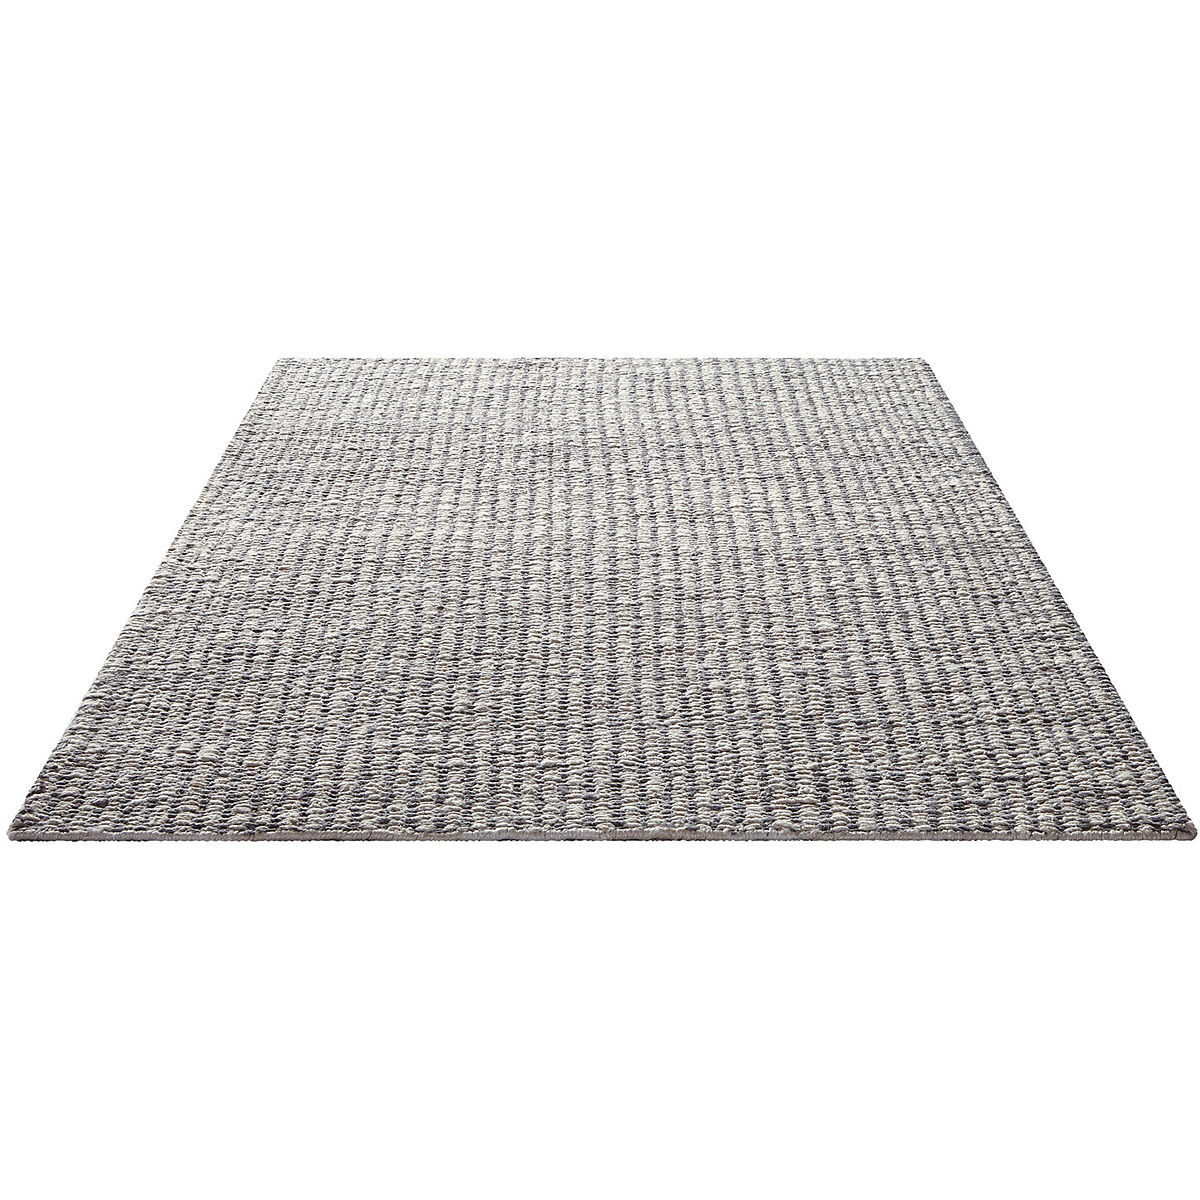 Teppich Wohnzimmer Taupe Down To Earth Handweb Teppich Stone Taupe Taupe 080x150